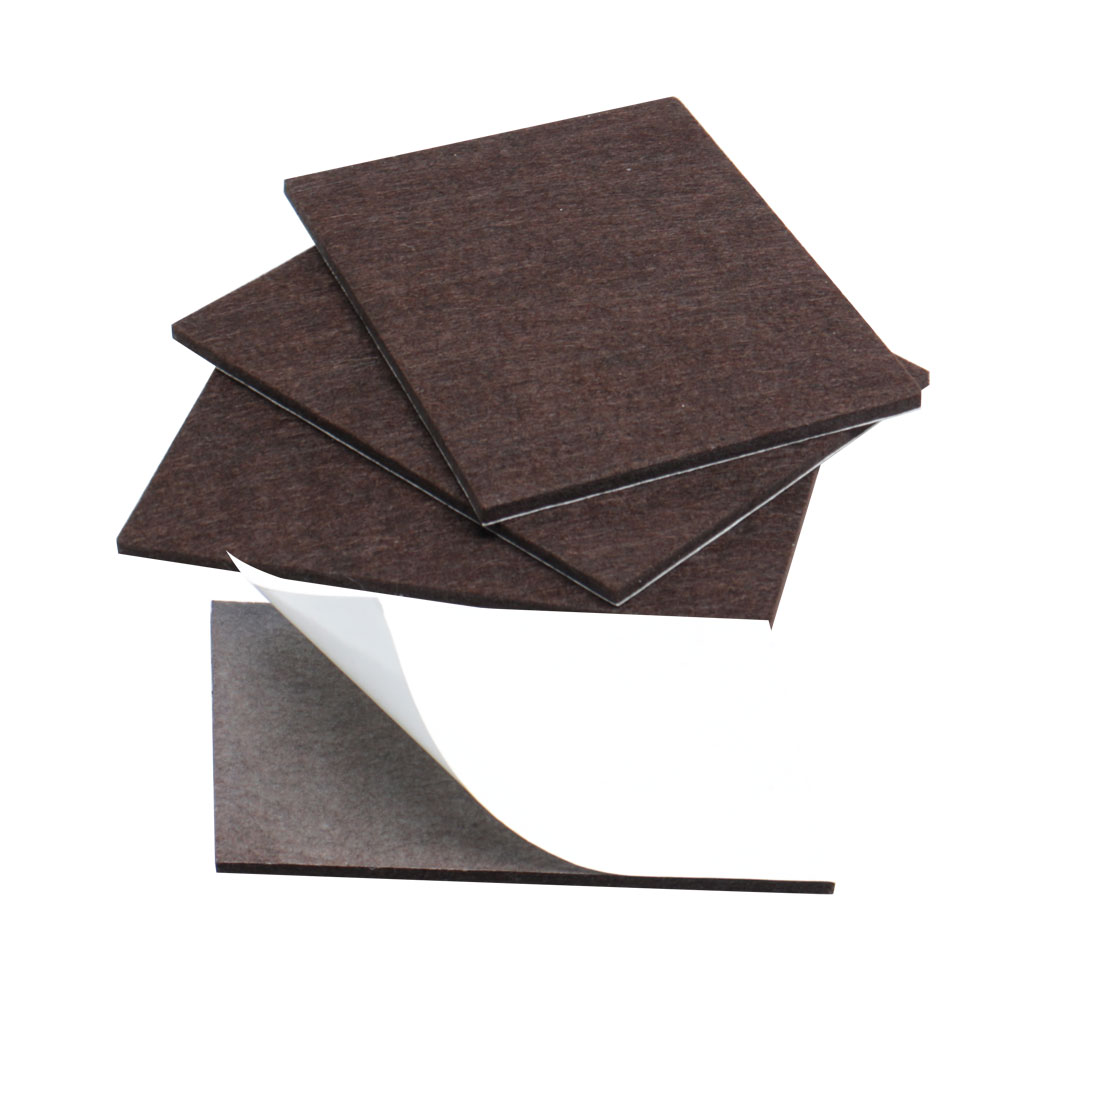 "Felt Pads Rectangle 5 7/8"" x 4 3/8"" Anti-scratch for Furniture Table Brown 4pcs"